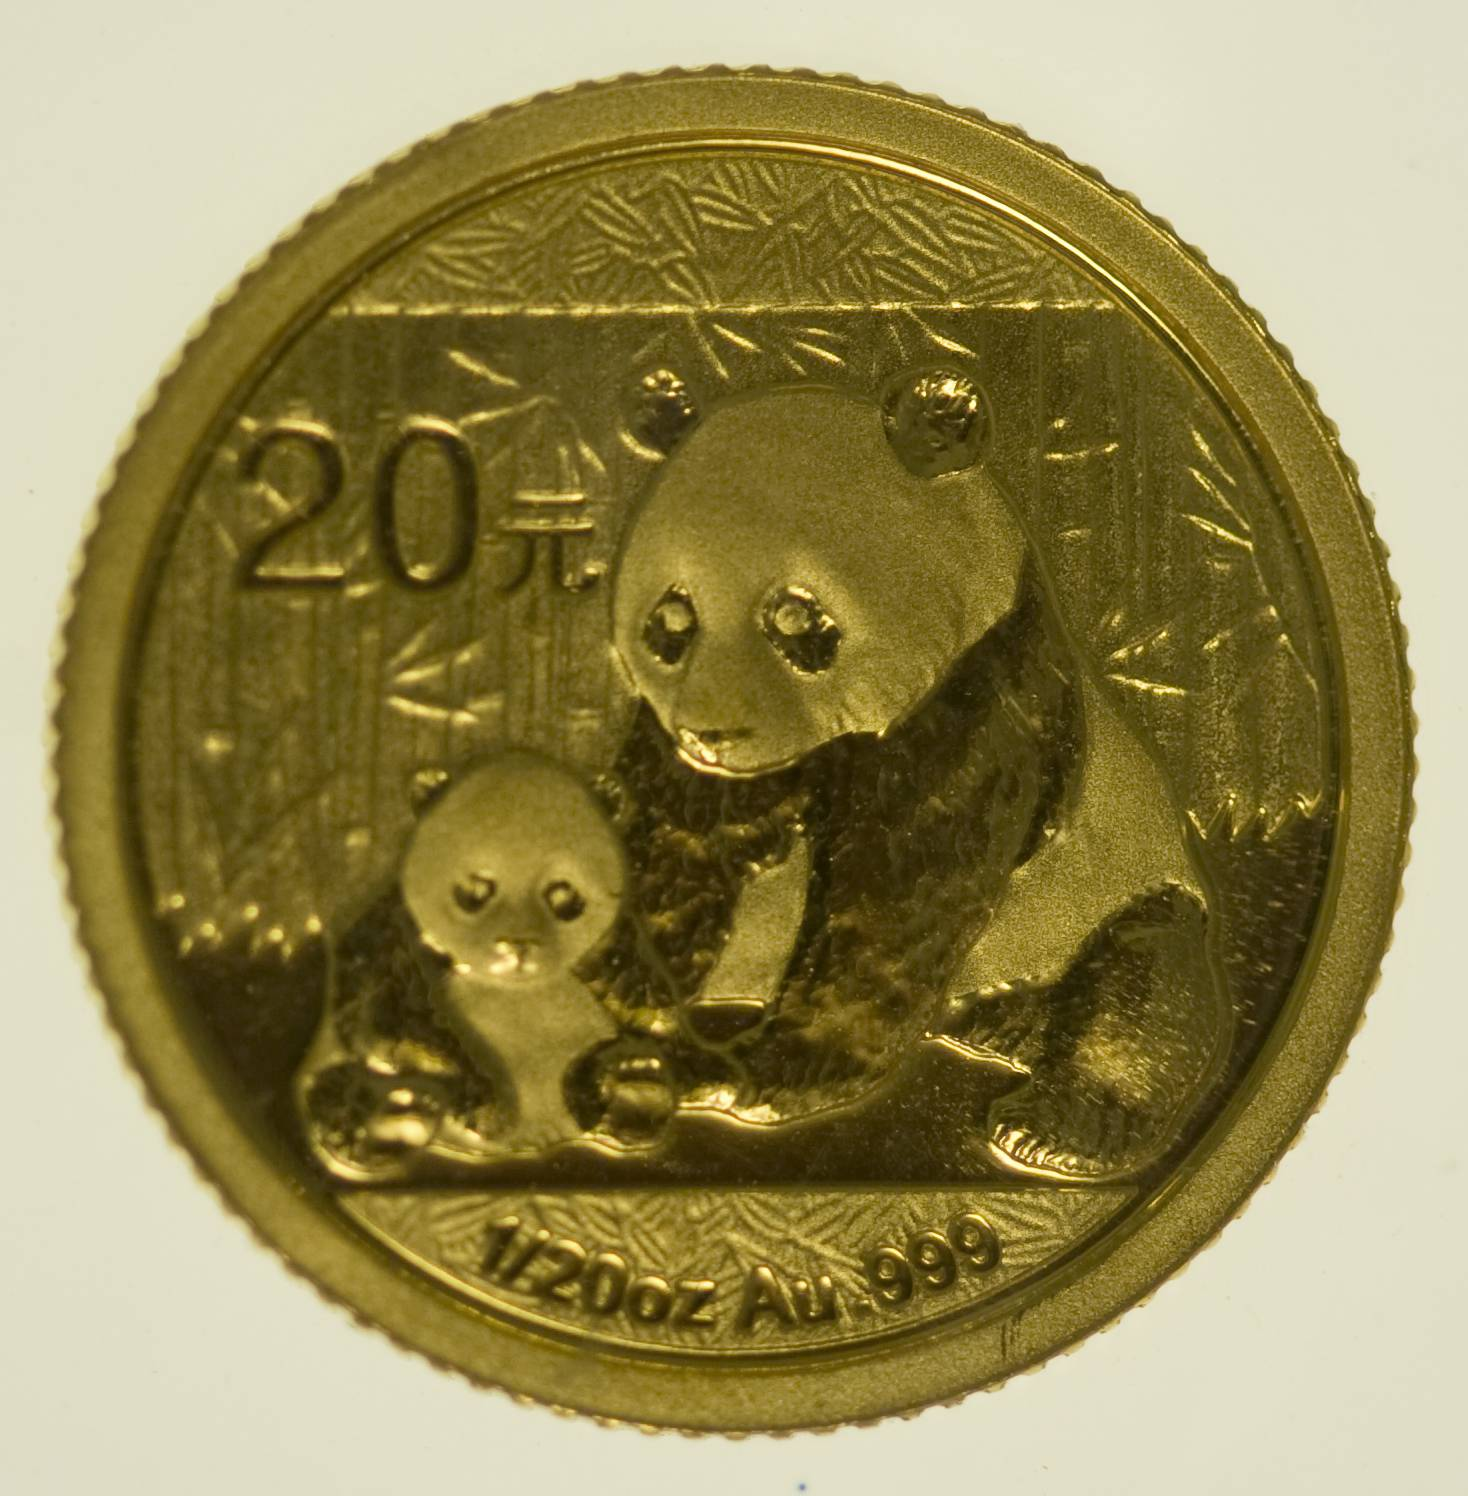 1/20 Unze Goldmünze China Panda 2012 20 Yuan 1,56 Gramm fein Gold RAR